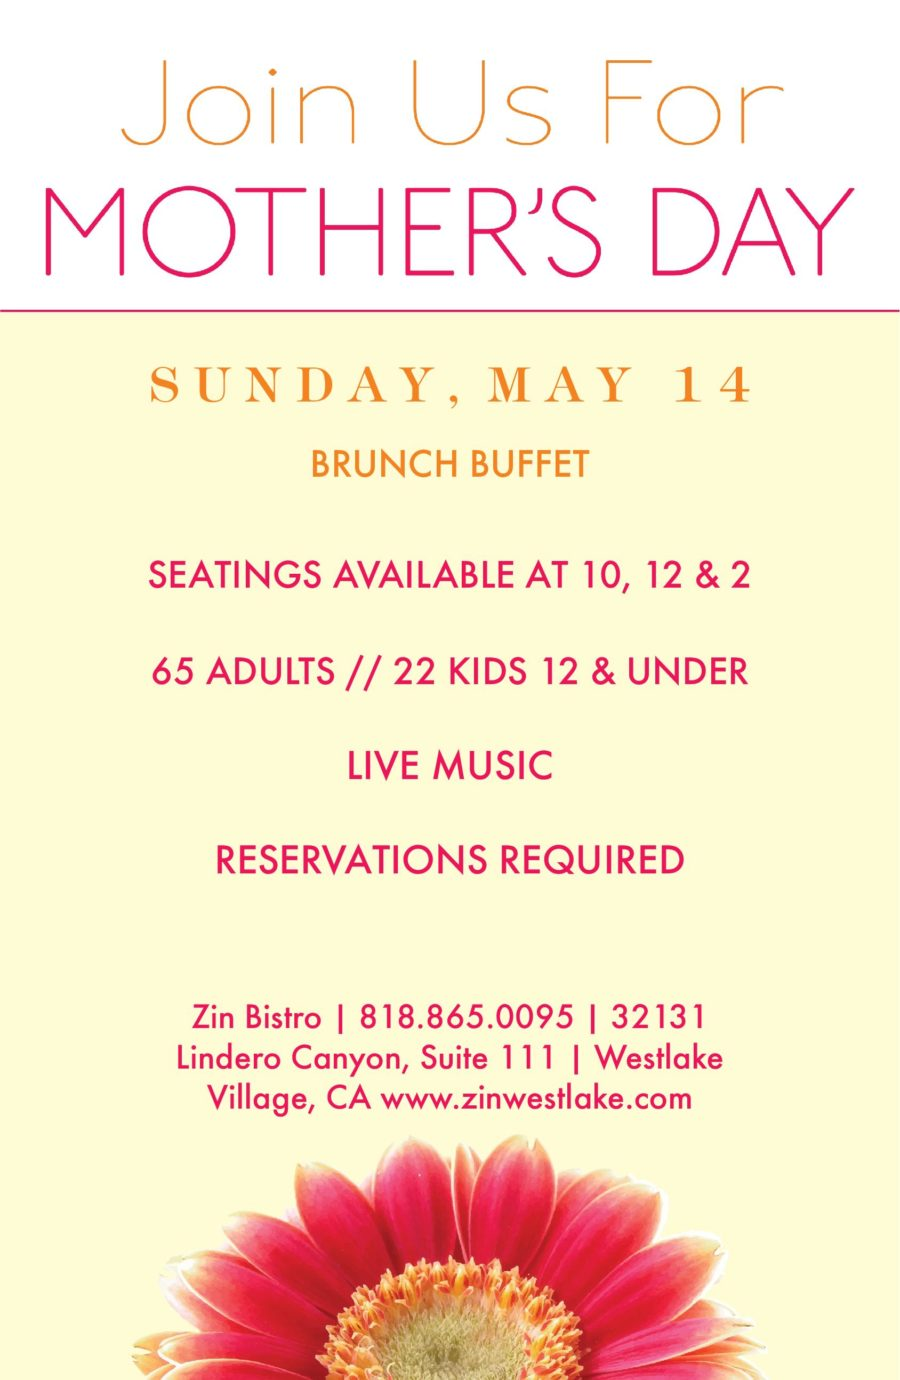 Celebrate Mother's Day on the Lake at Zin Bistro